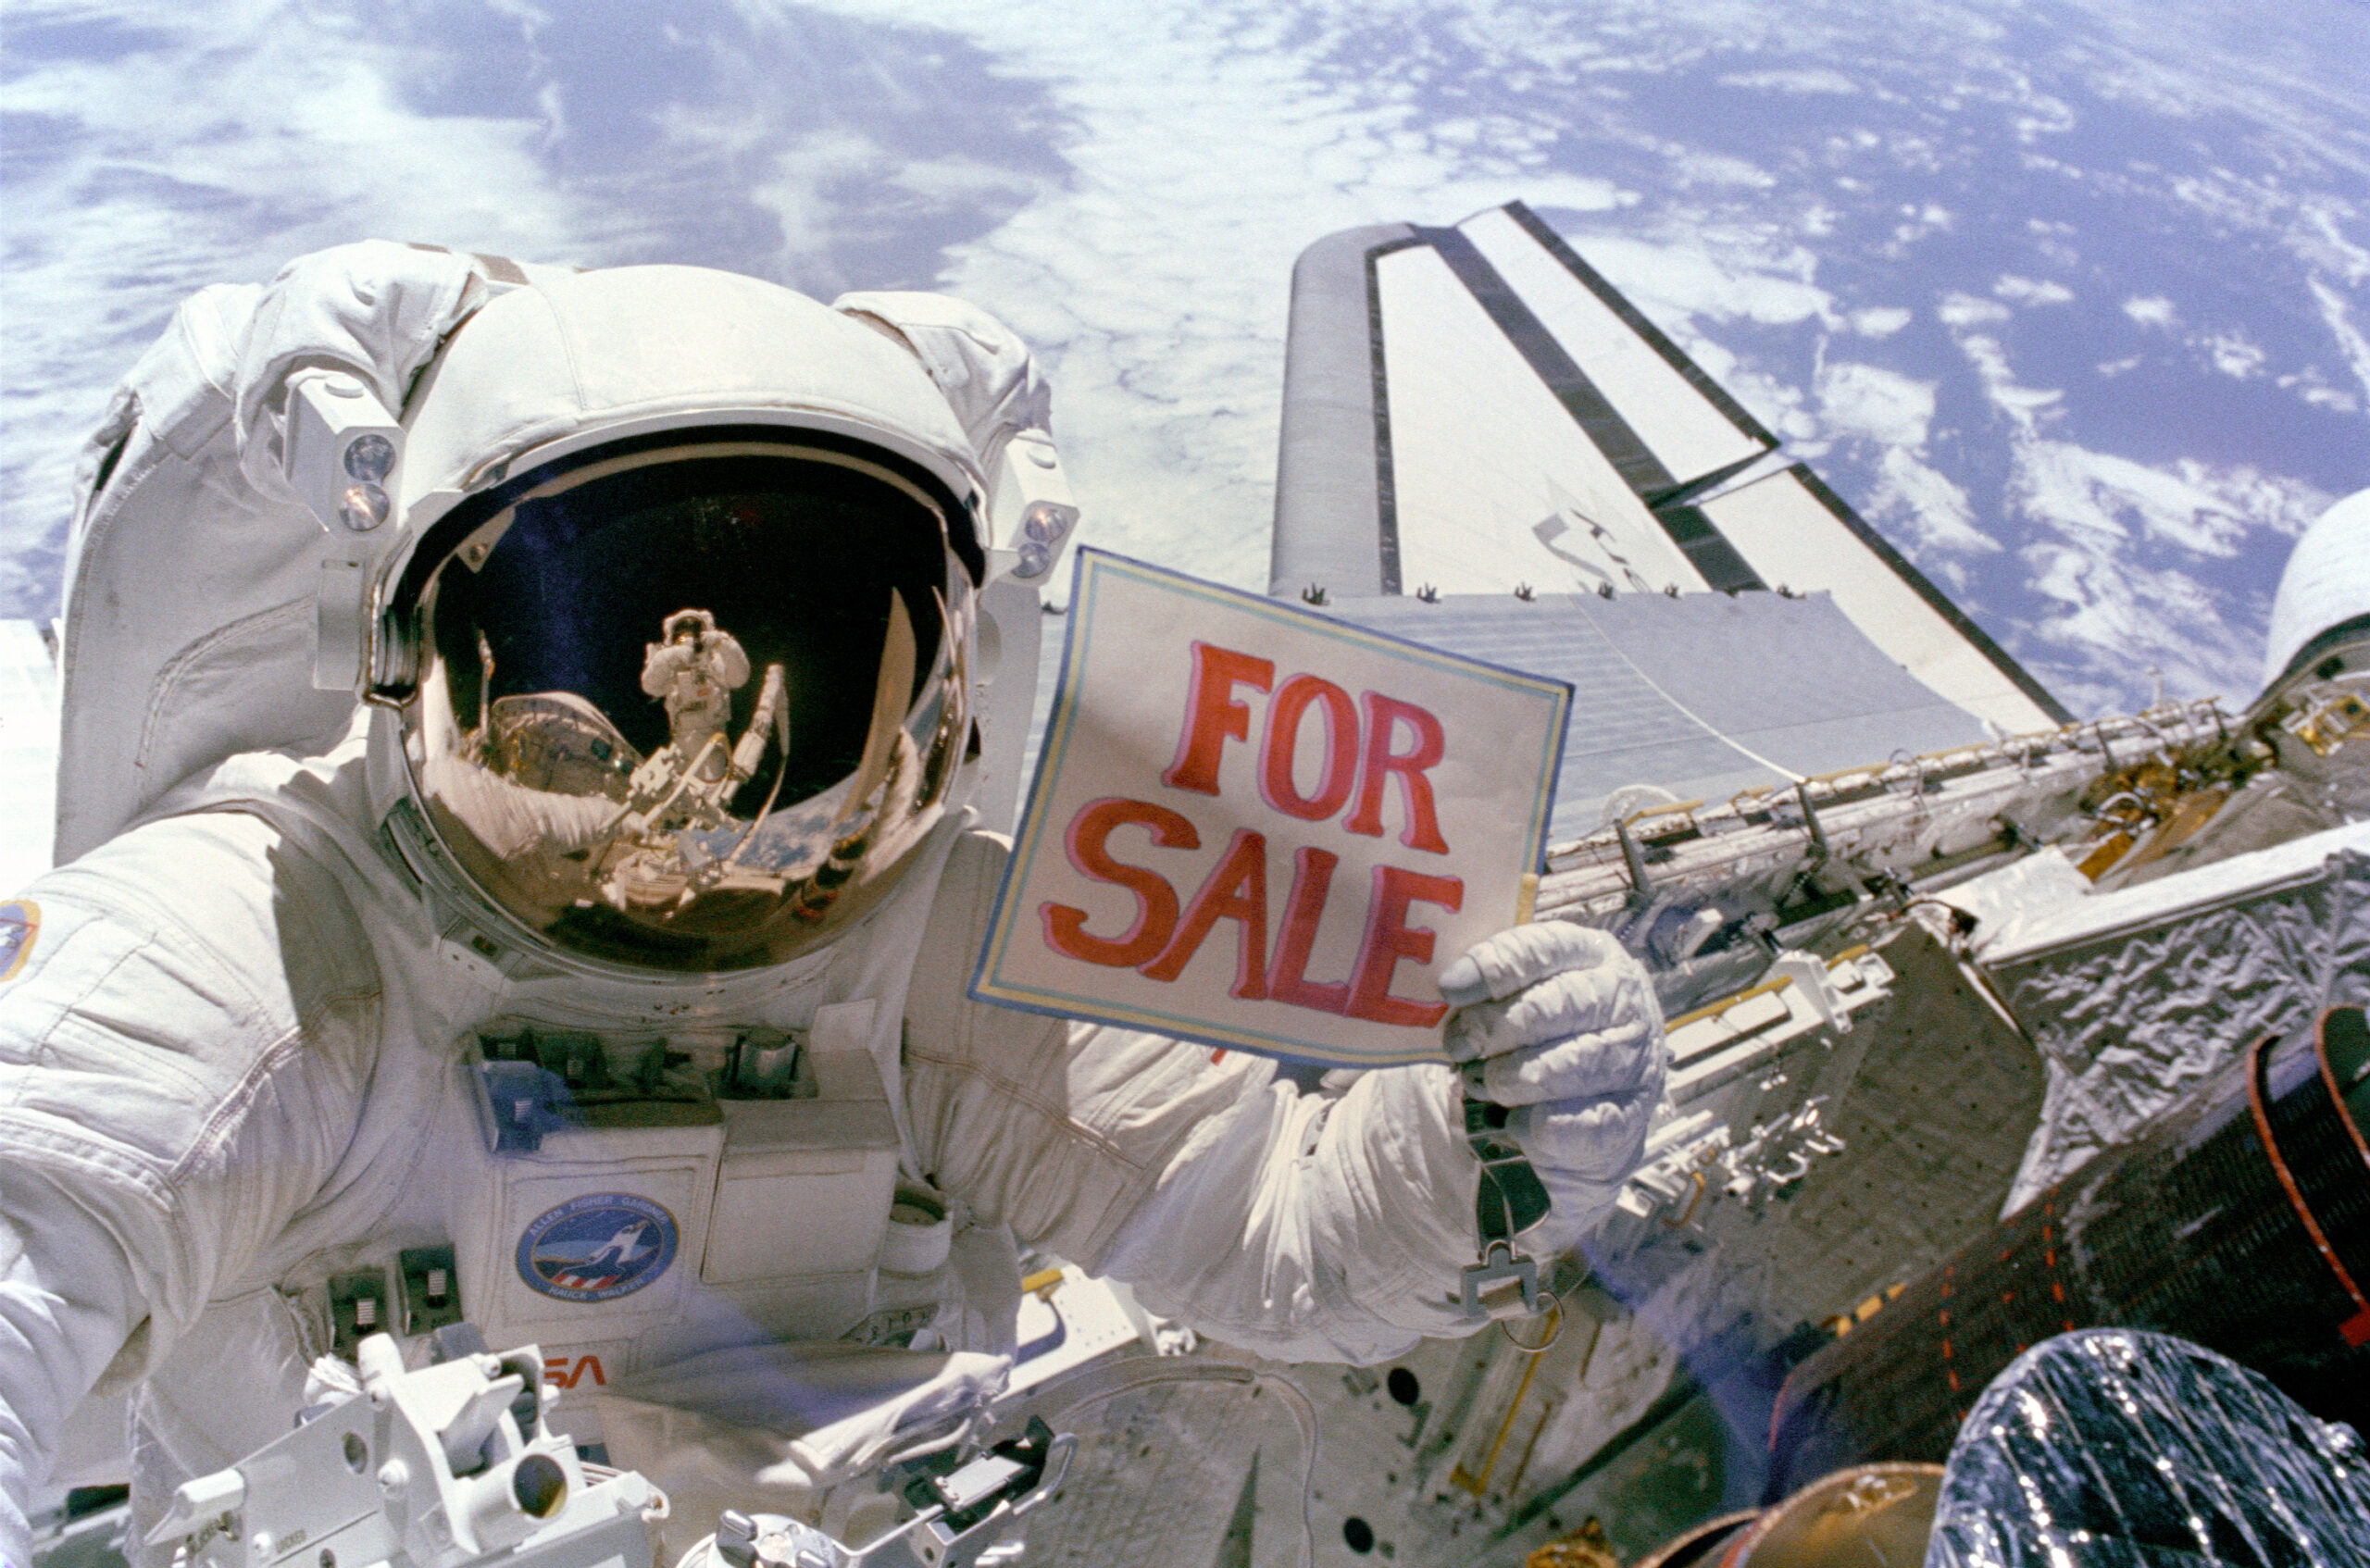 buy ads in Space with Dogecoin will soon be a thing